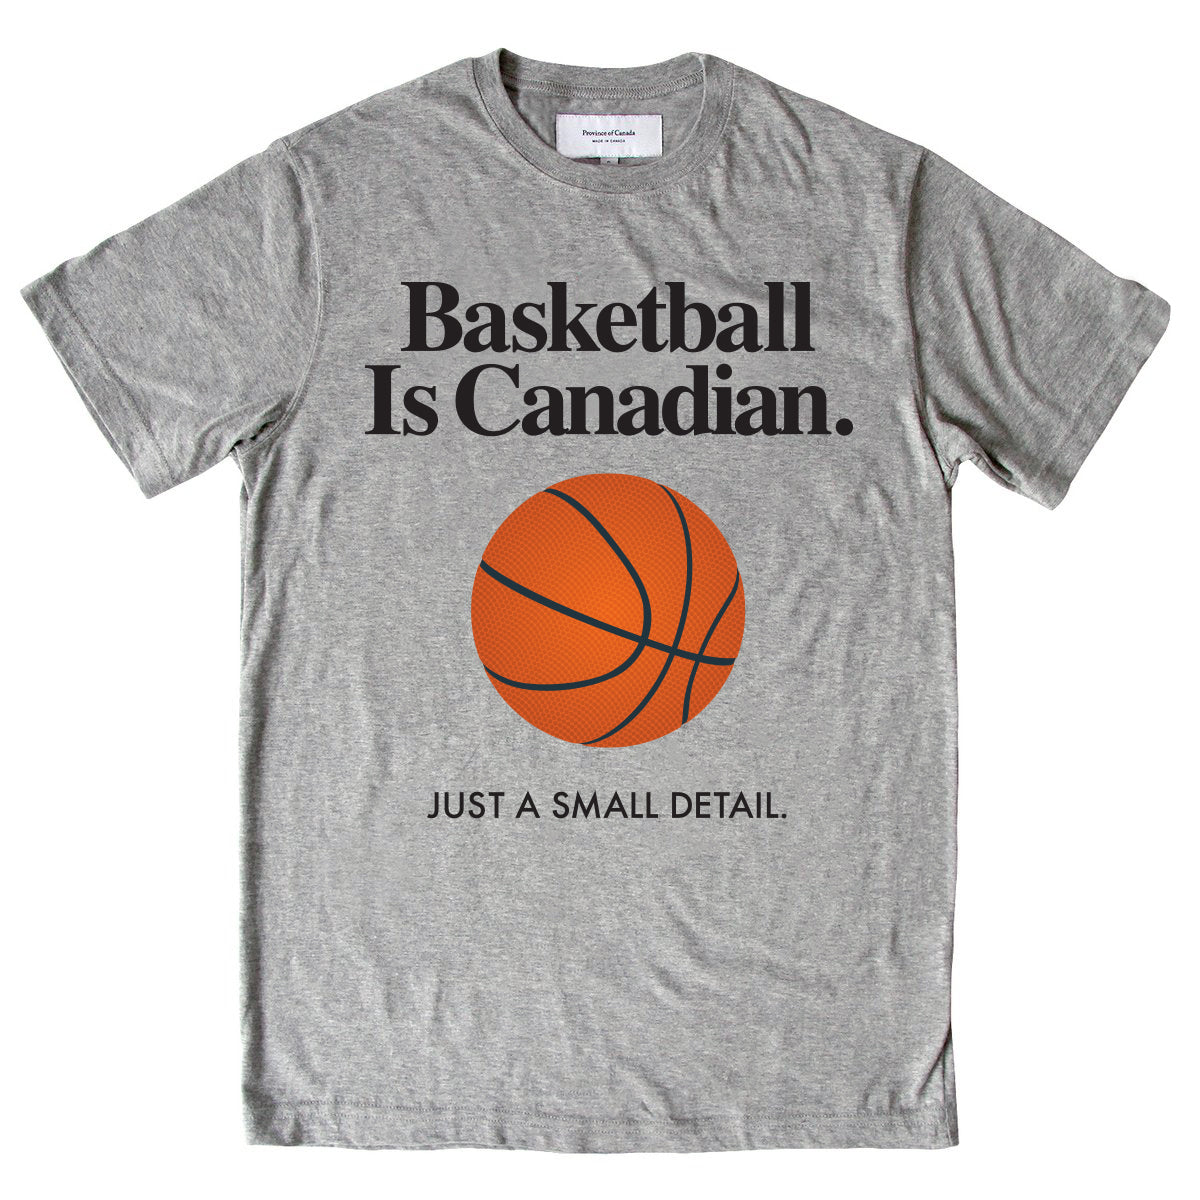 Province of Canada - Basketball is Canadian Tee